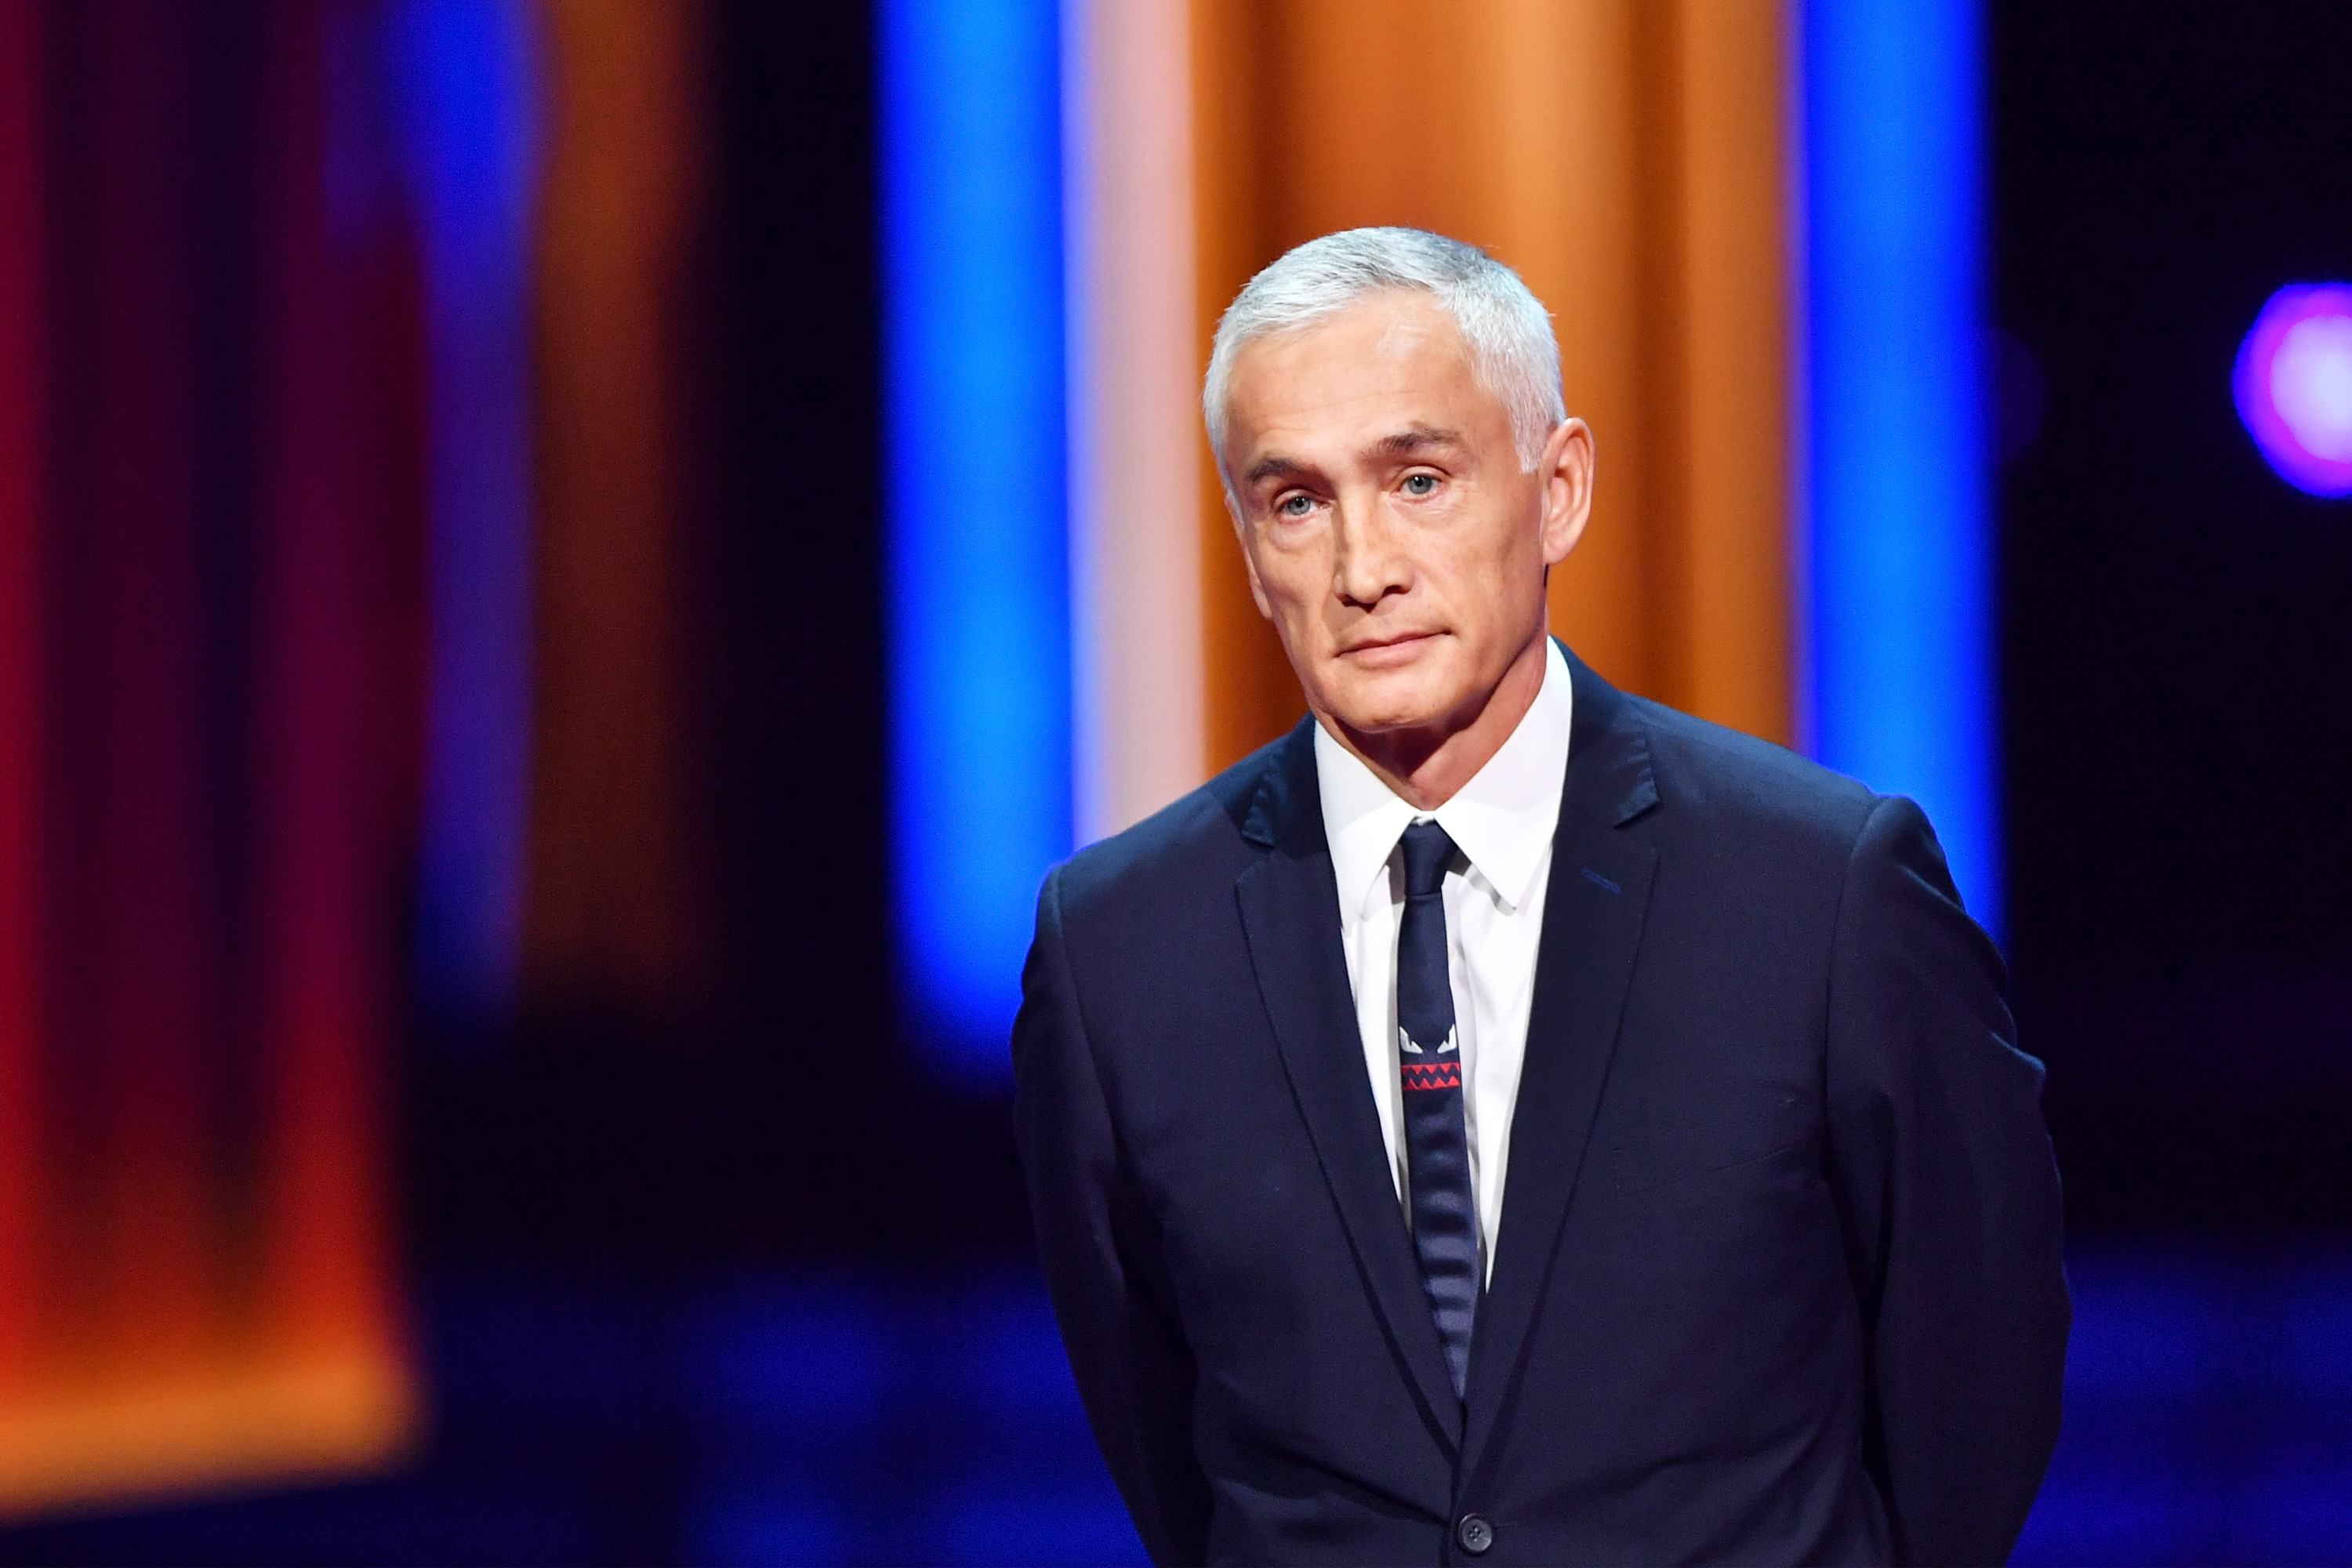 Jorge Ramos speaks onstage during Univision's 29th Edition of Premio Lo Nuestro A La Musica Latina at the American Airlines Arena on Feb. 23, 2017 in Miami, Florida.